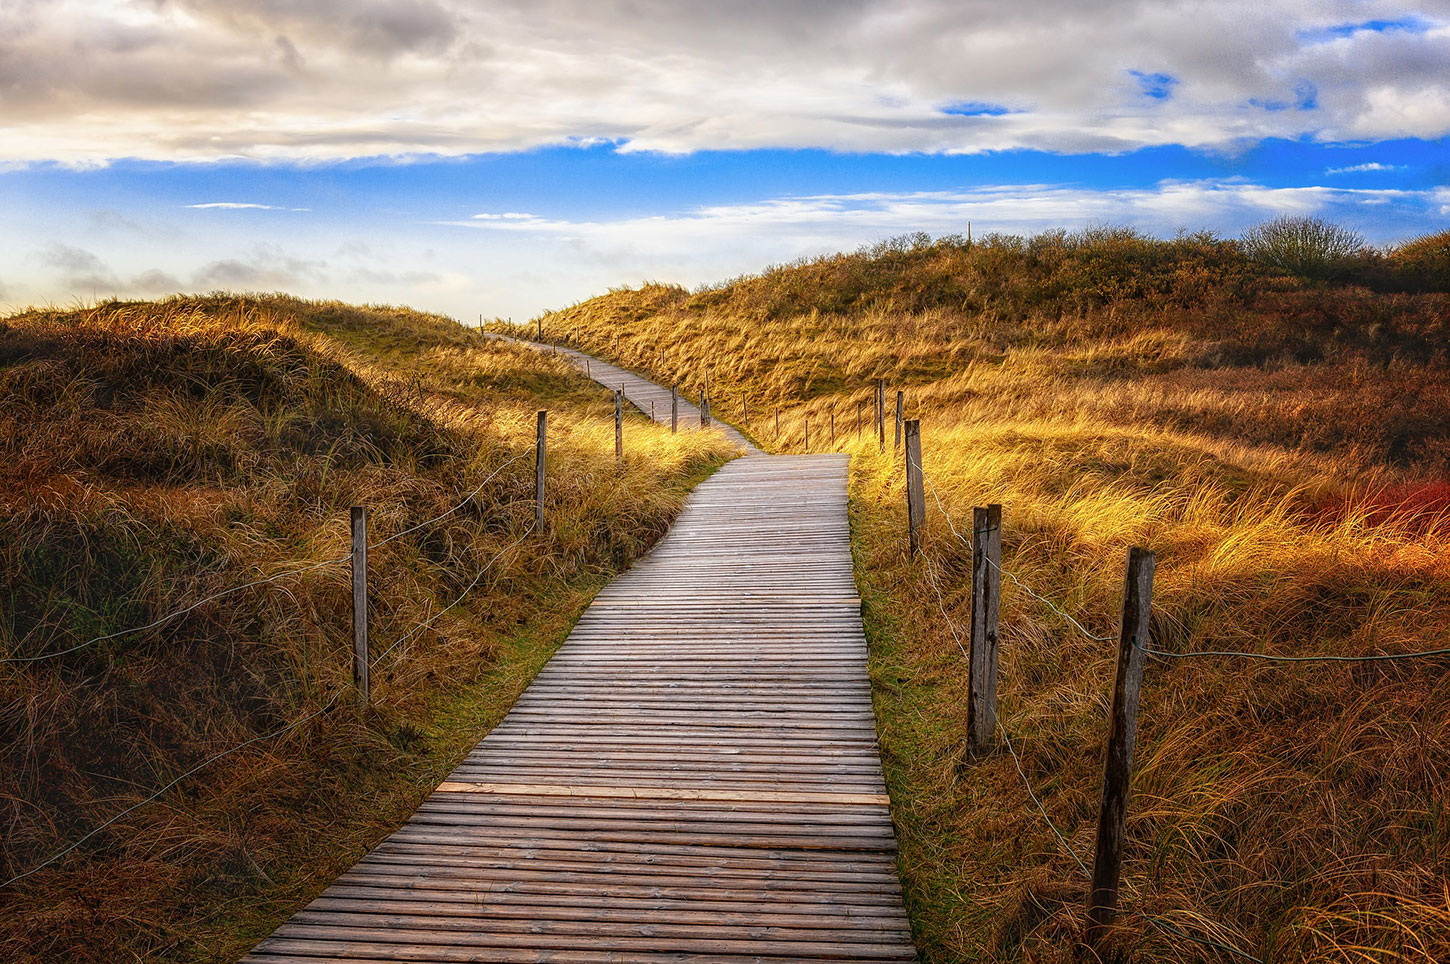 Walkway over the dunes at a beach